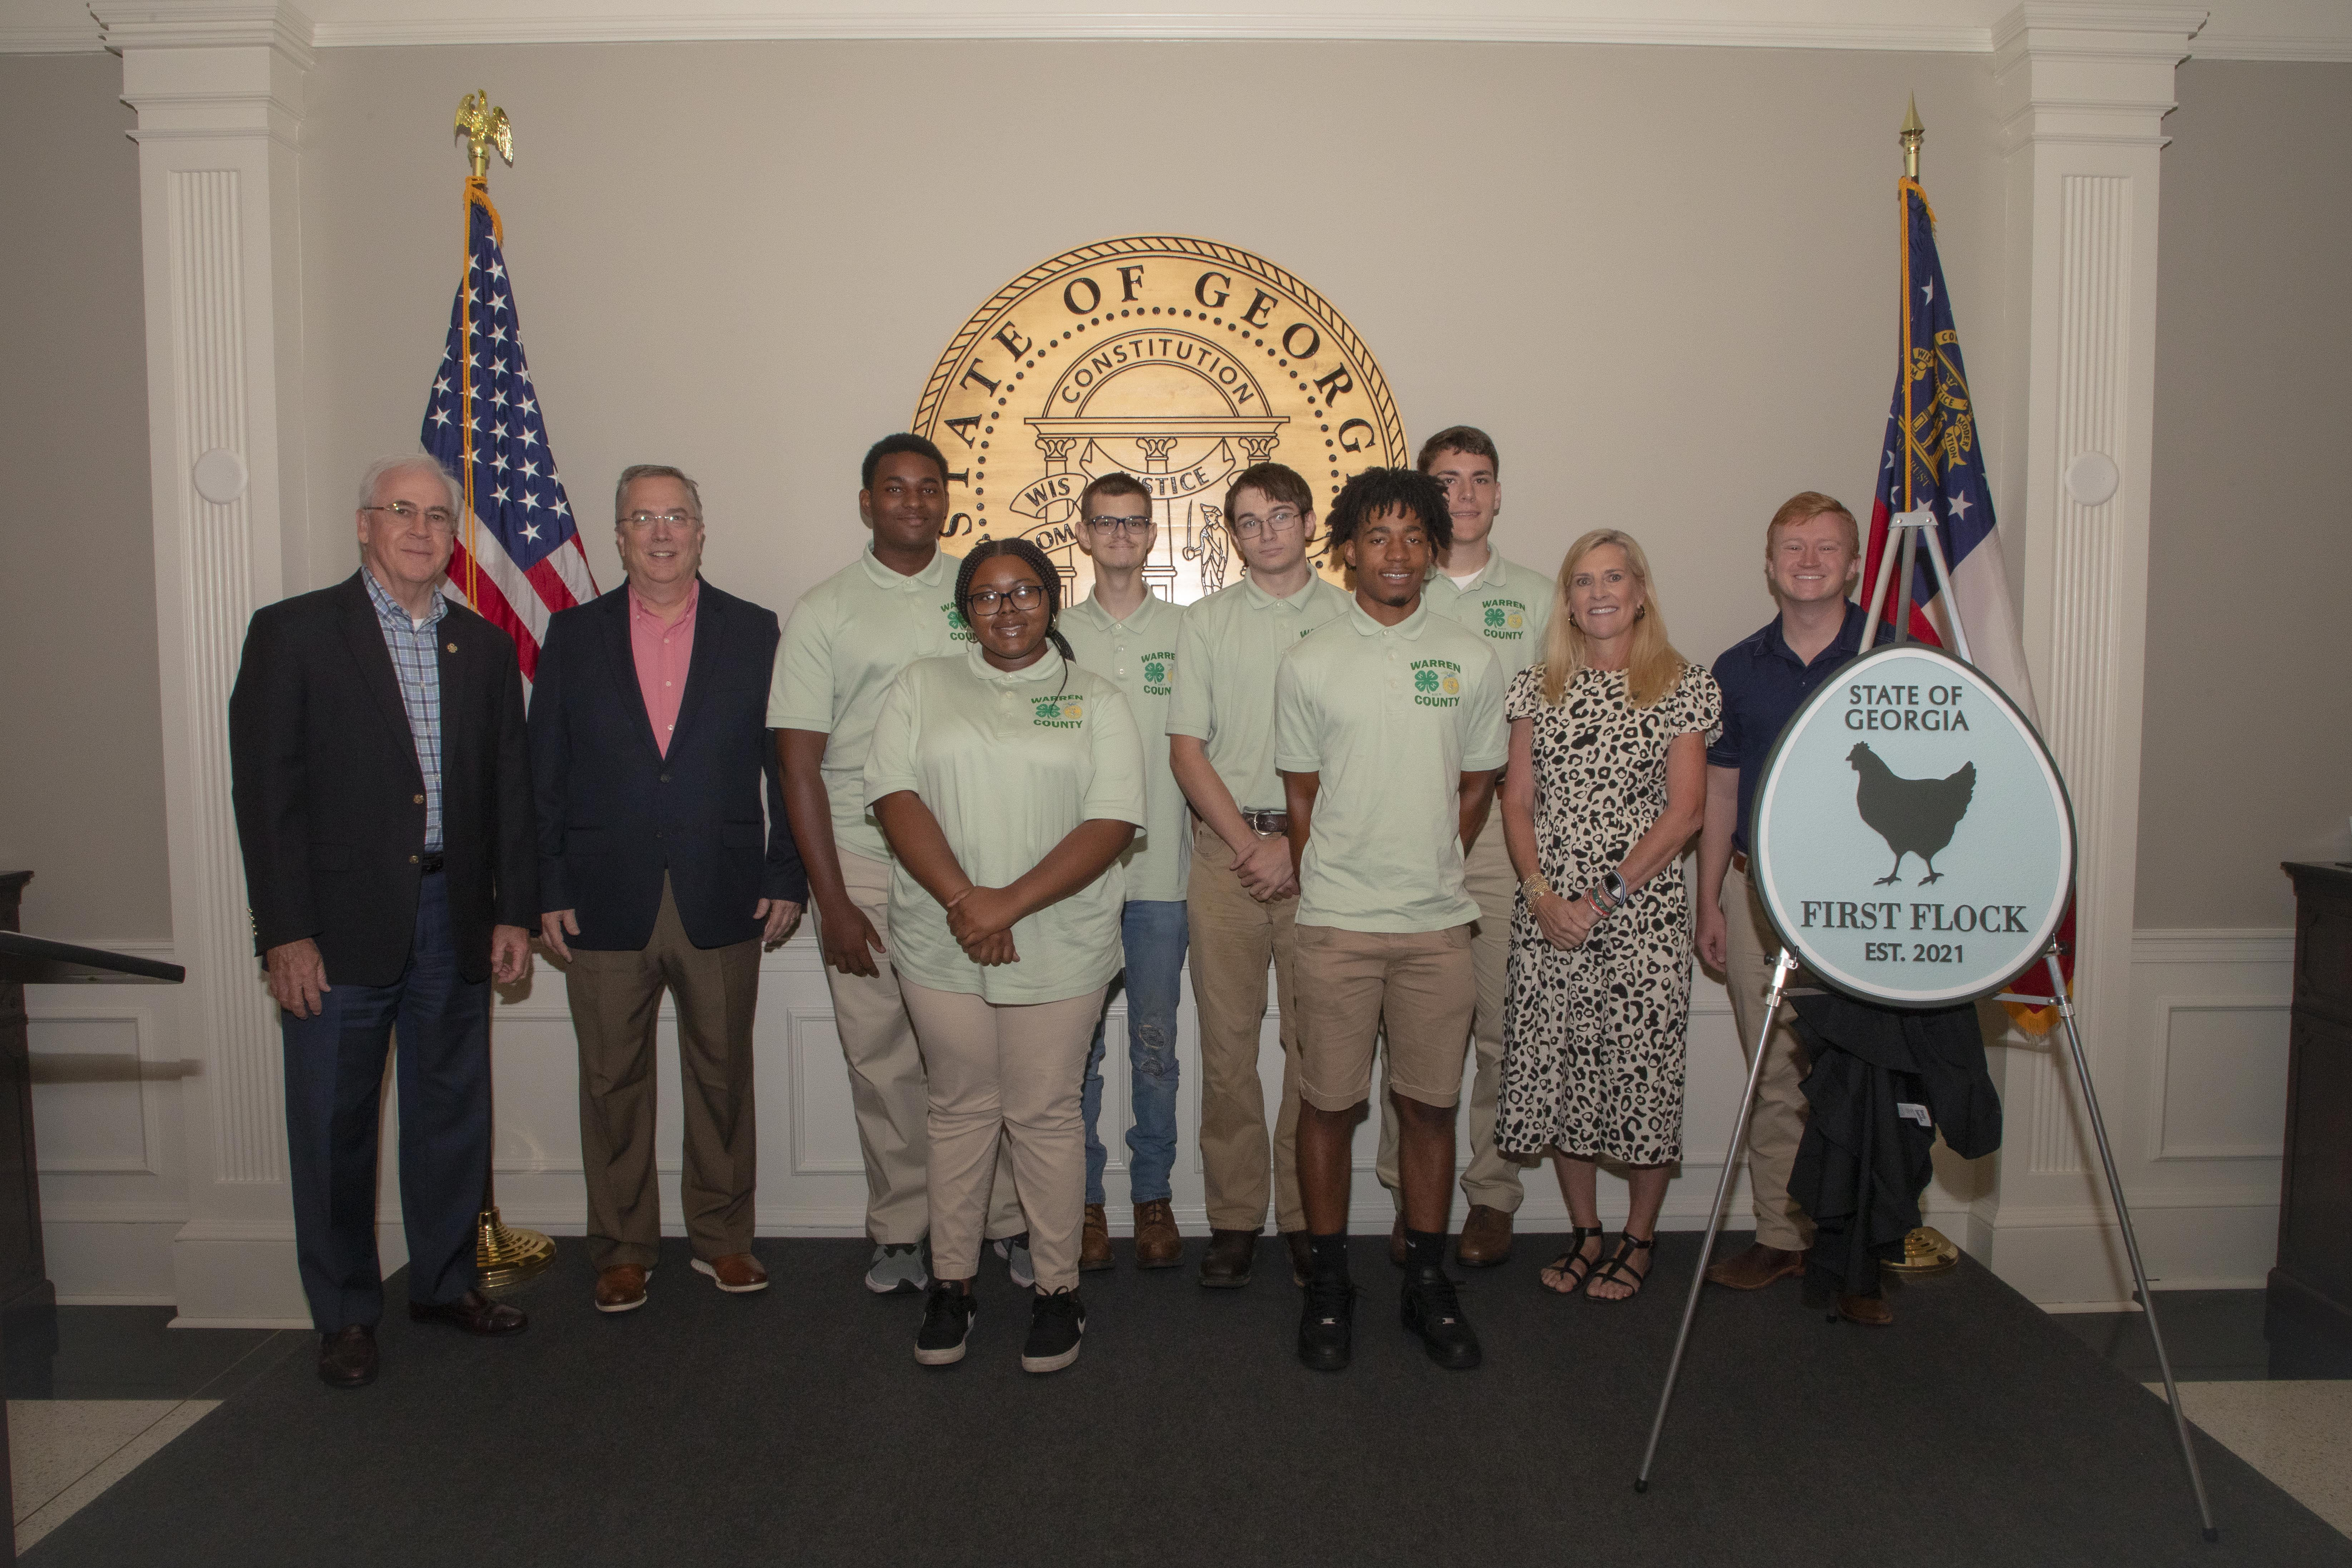 Arch Smith, Mike Giles, Warren County 4-H team, Marty Kemp and